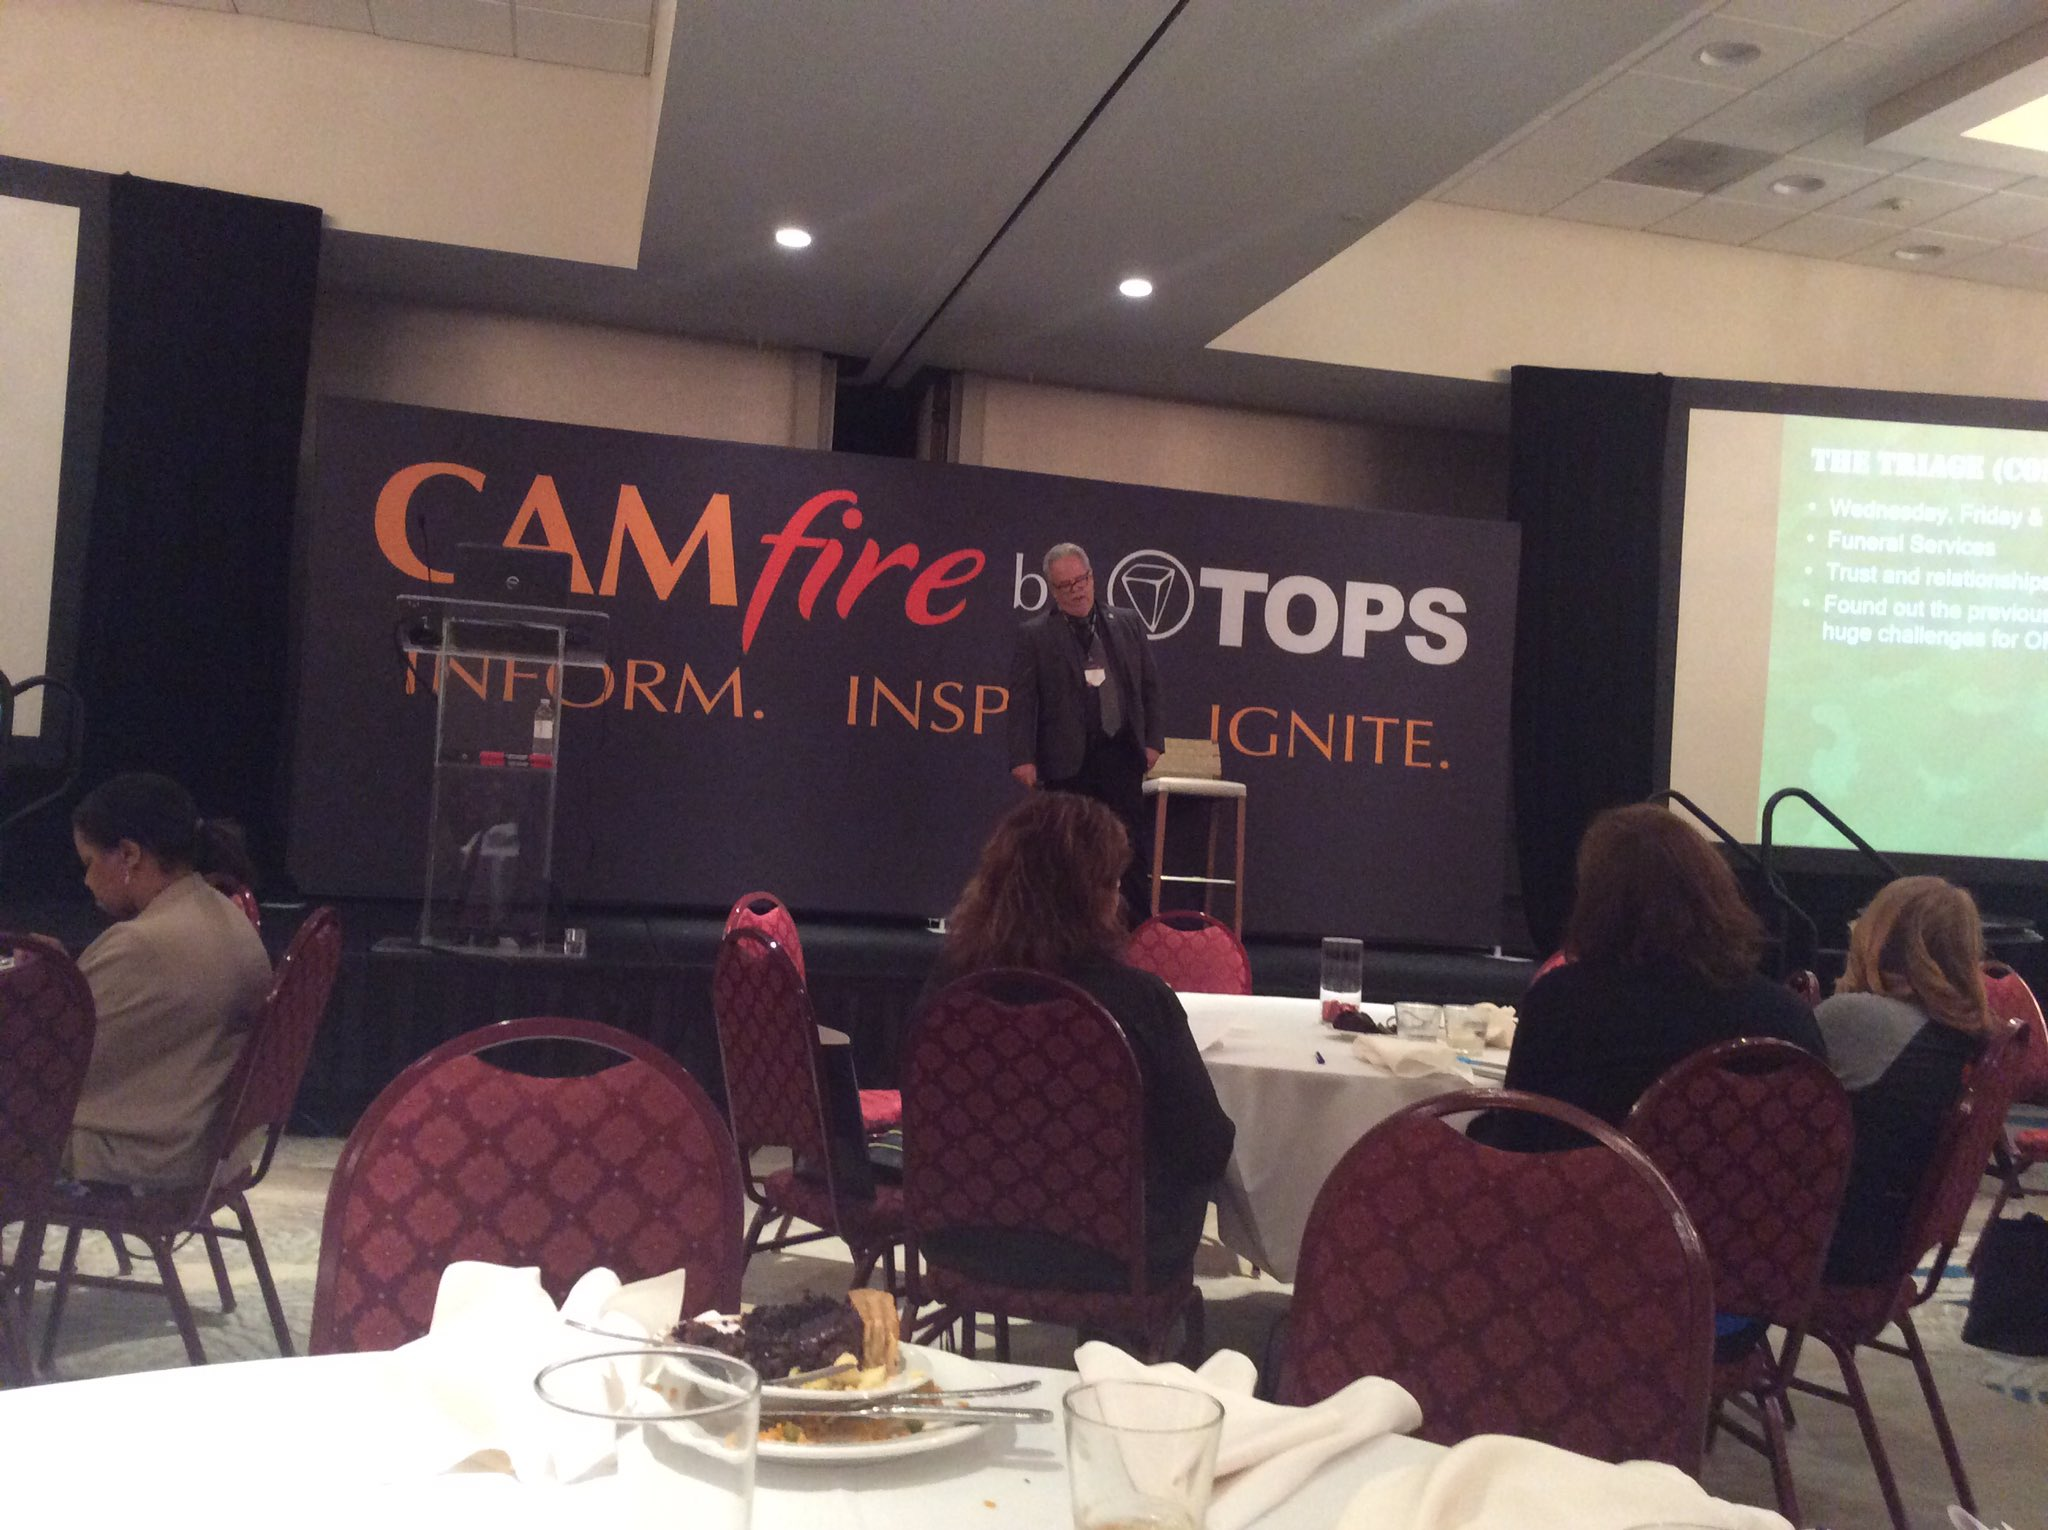 Attending an inspirational keynote session by Rolf Crocker of Omni Management at Tops CAMFire in Orlando, FL #CAMfire17 https://t.co/zJkLusdny4